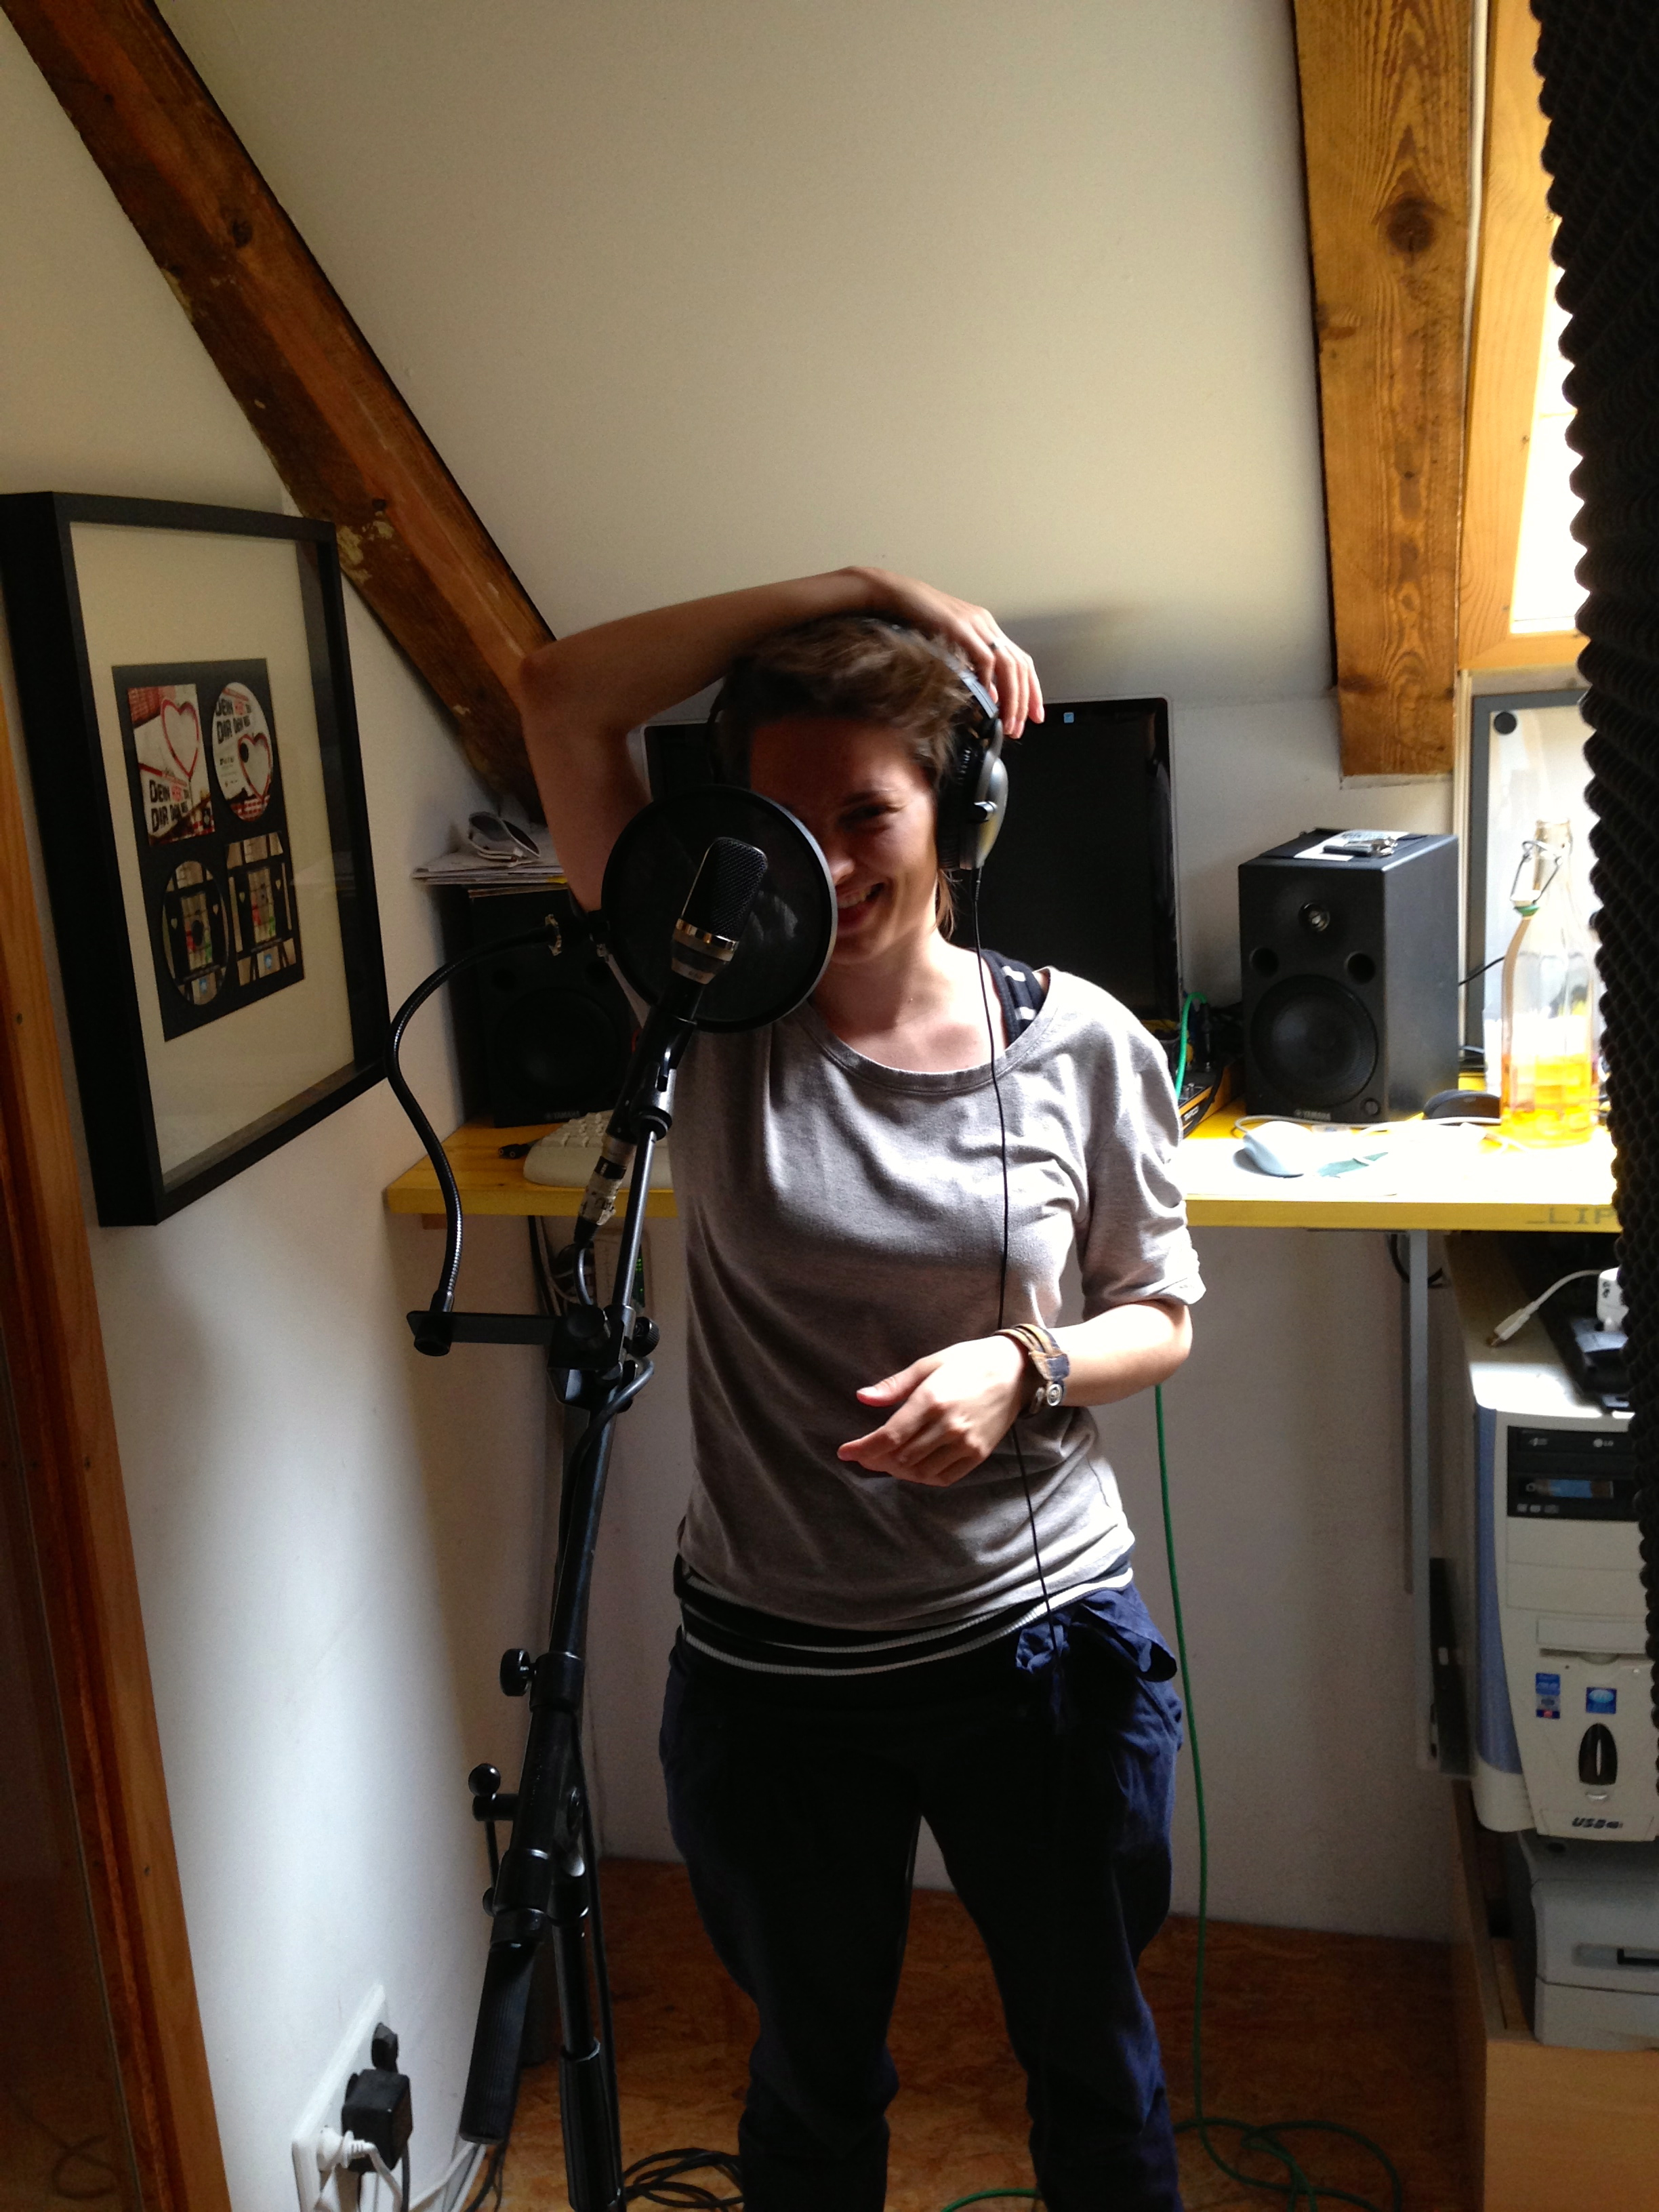 Klay getting ready to record the vocals in the extra room, while Ben and Walter record bass and drums in the main room